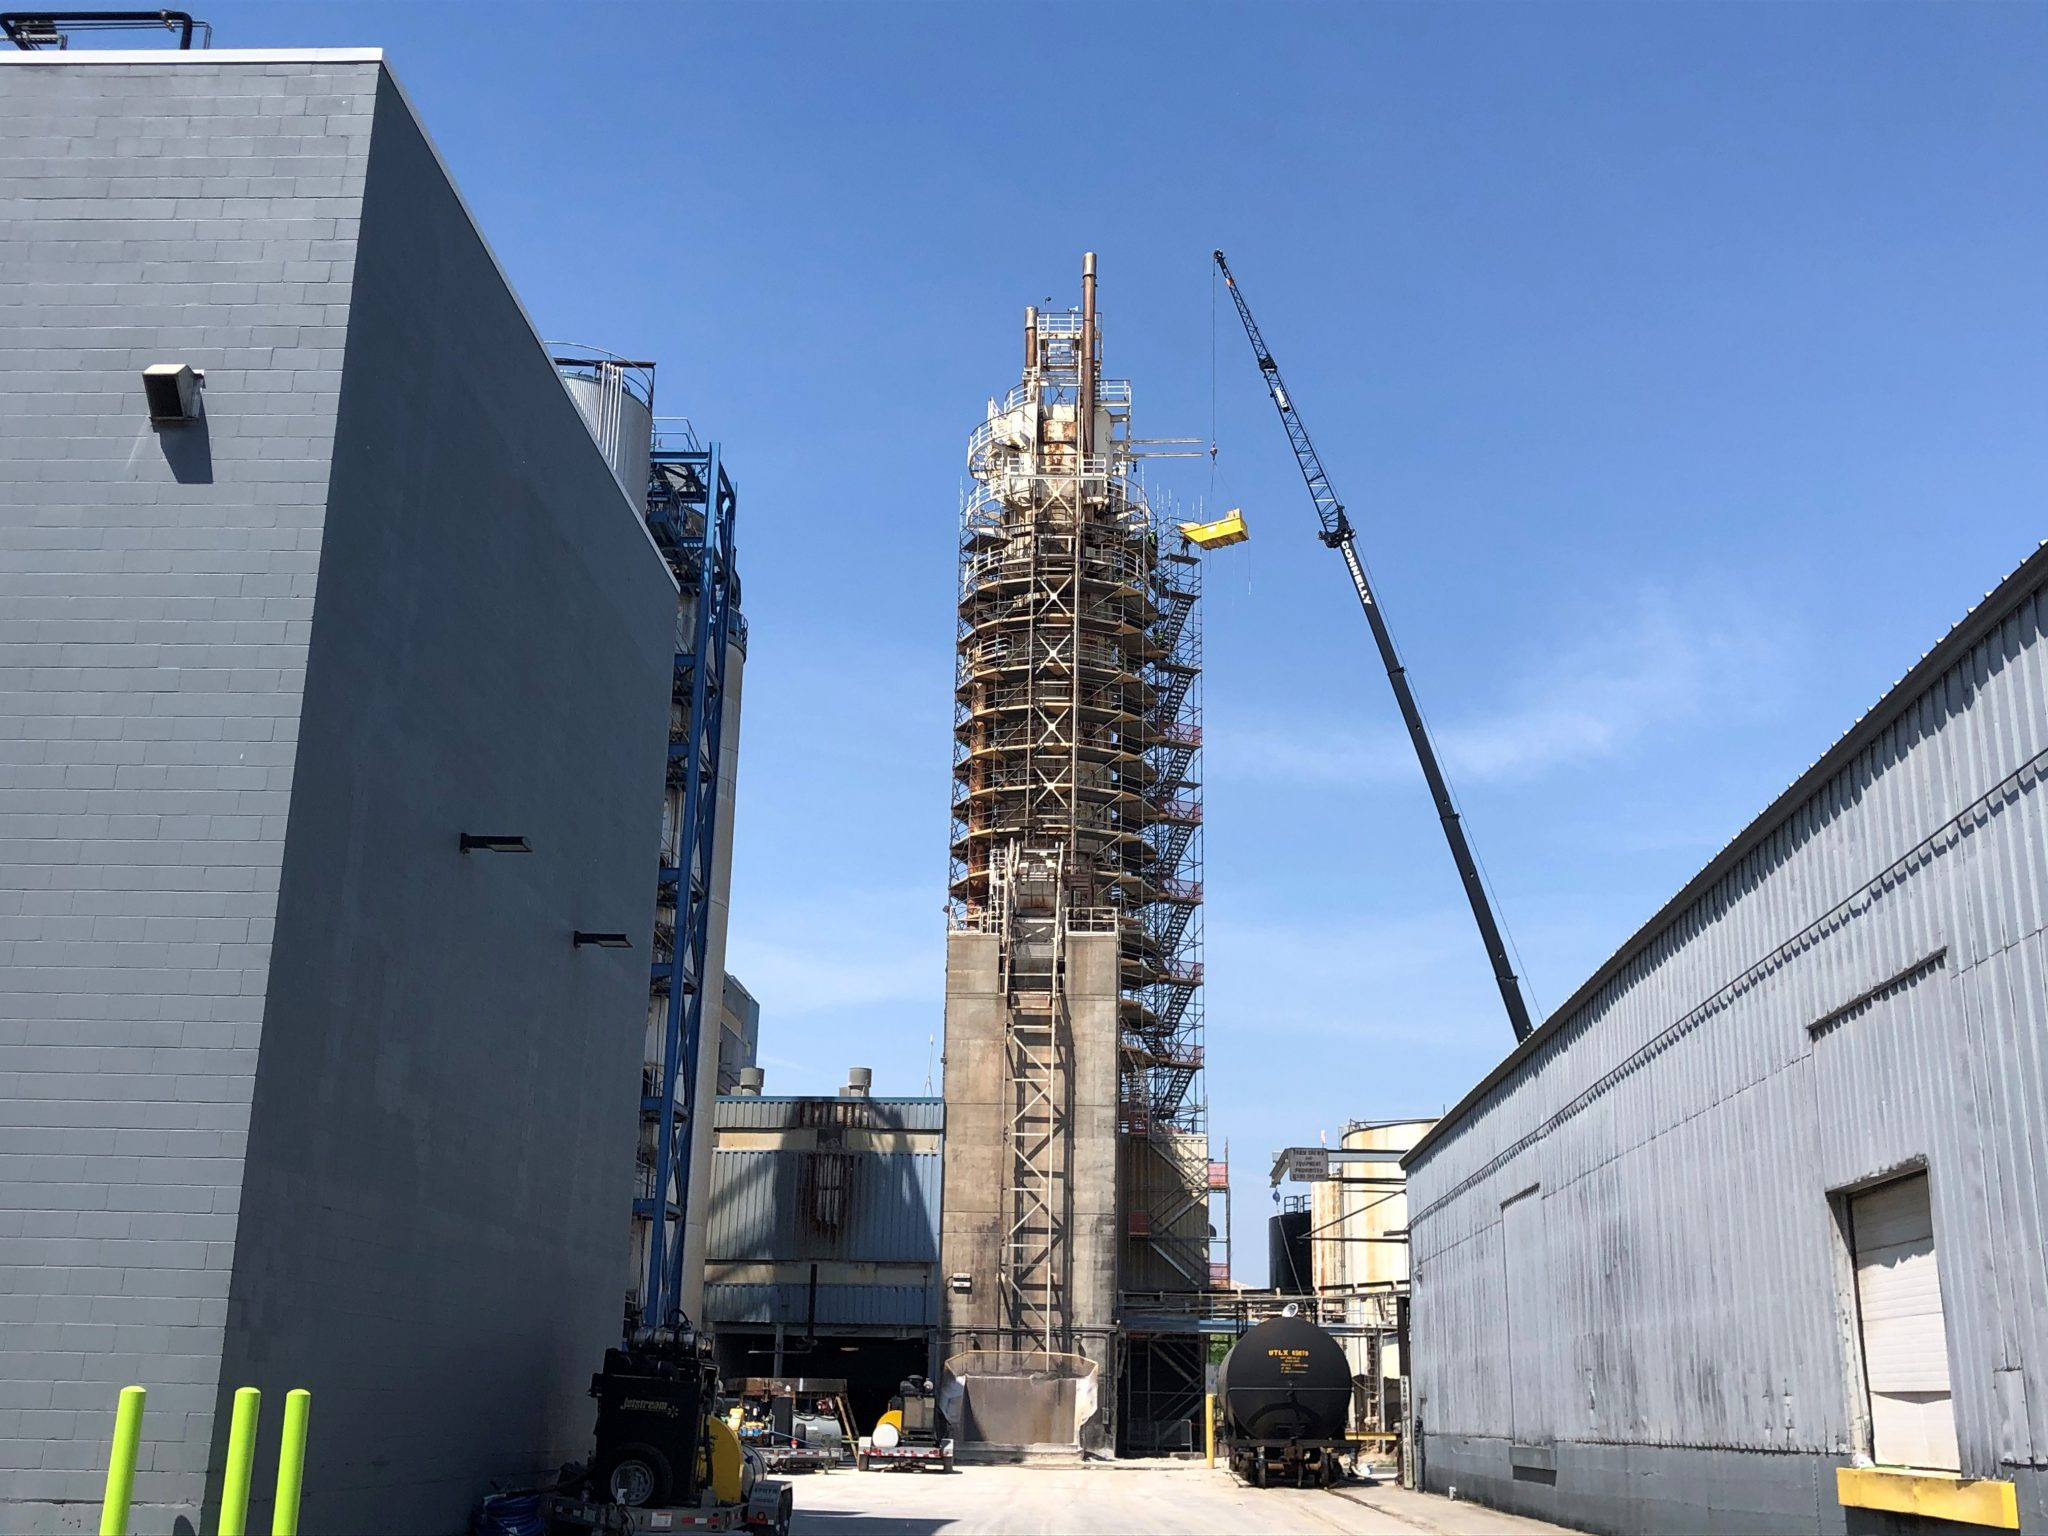 11silo being built during the day